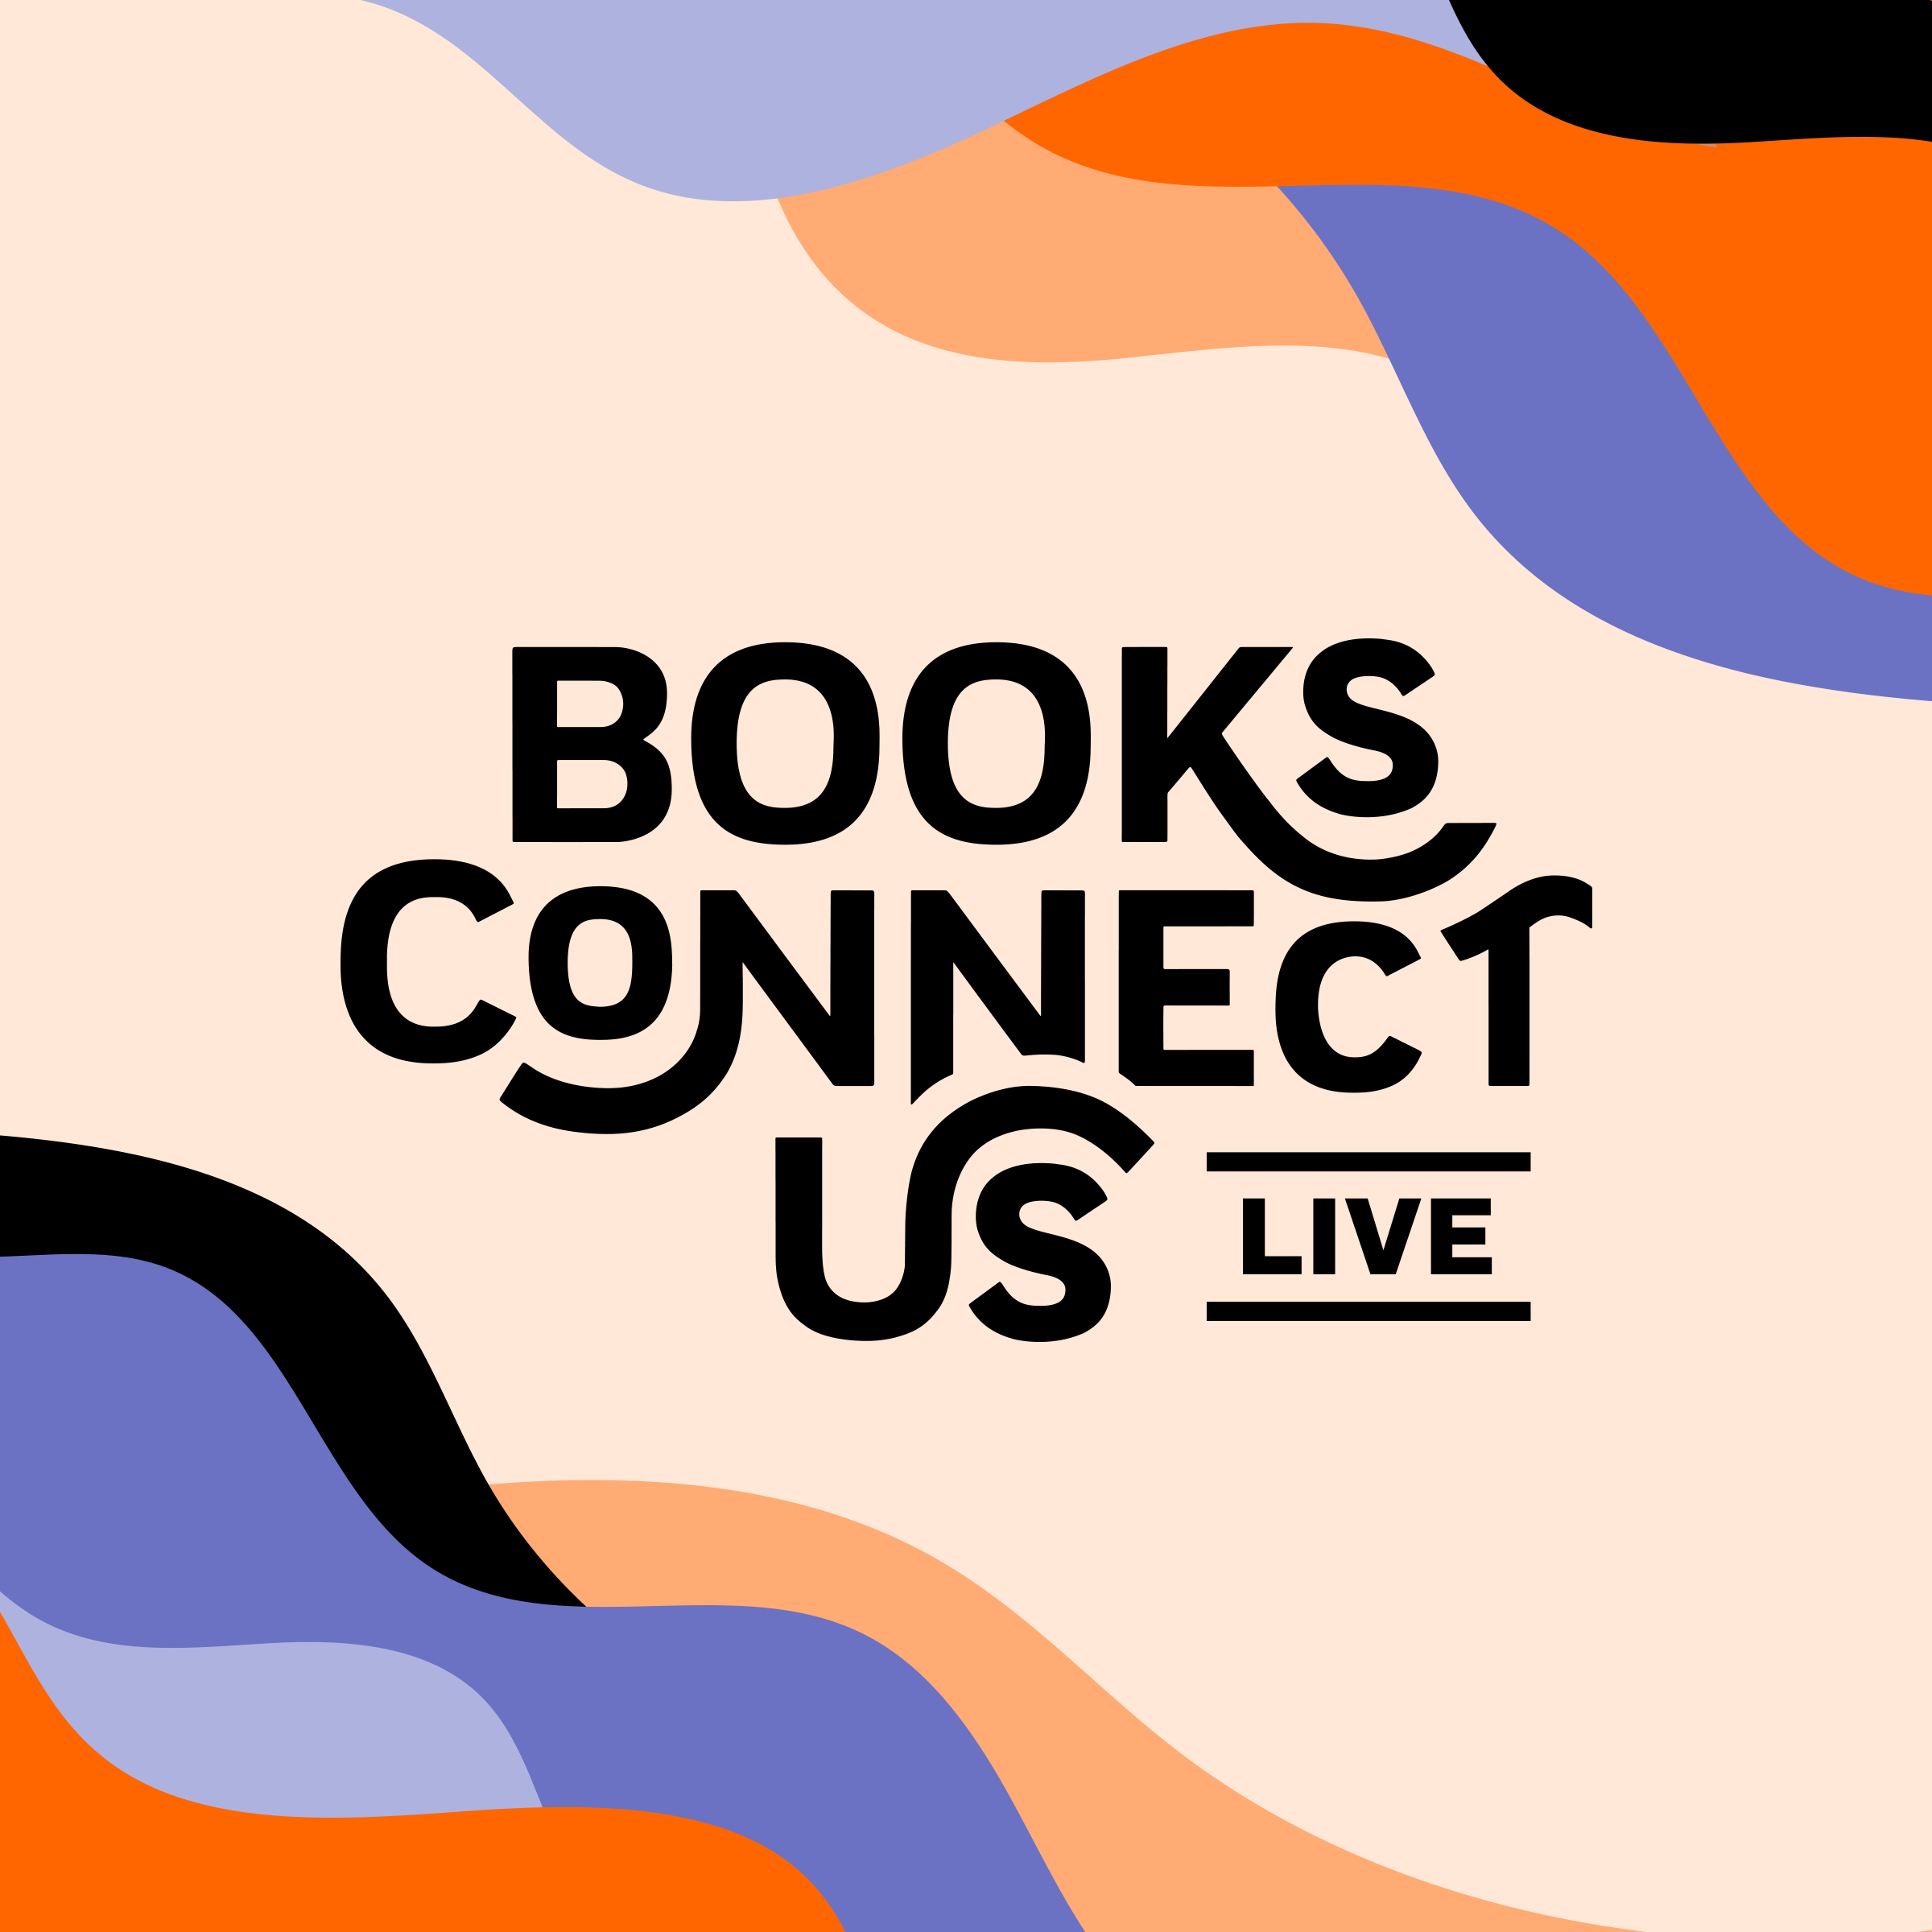 Books Connect Us Live 6/29-7/12